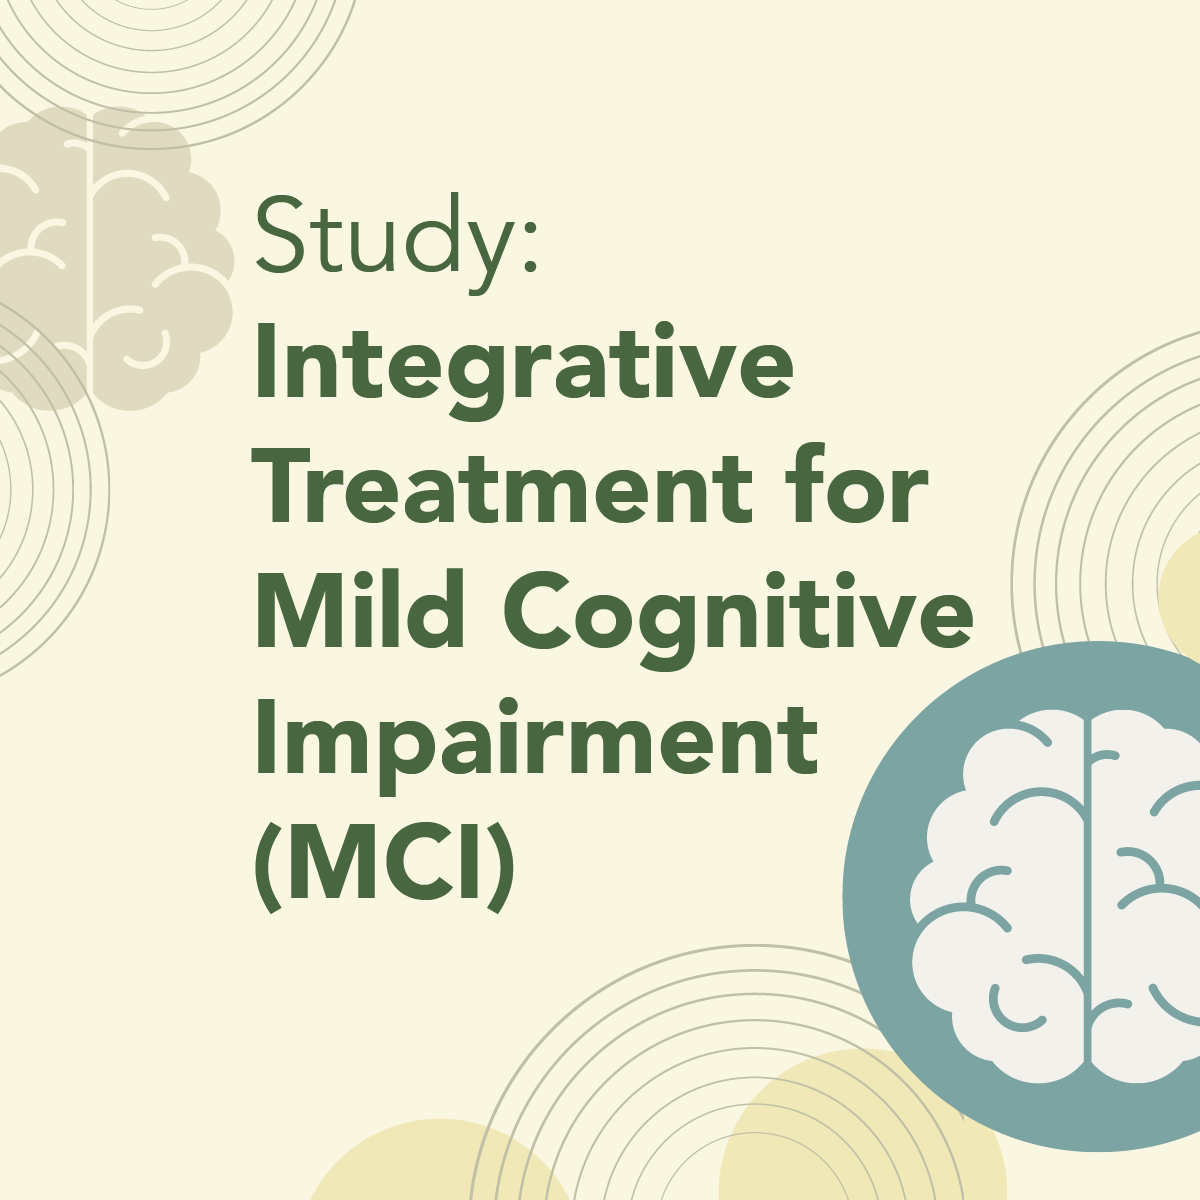 Study Integrative Treatment for Mild Cognitive Impairment MCI